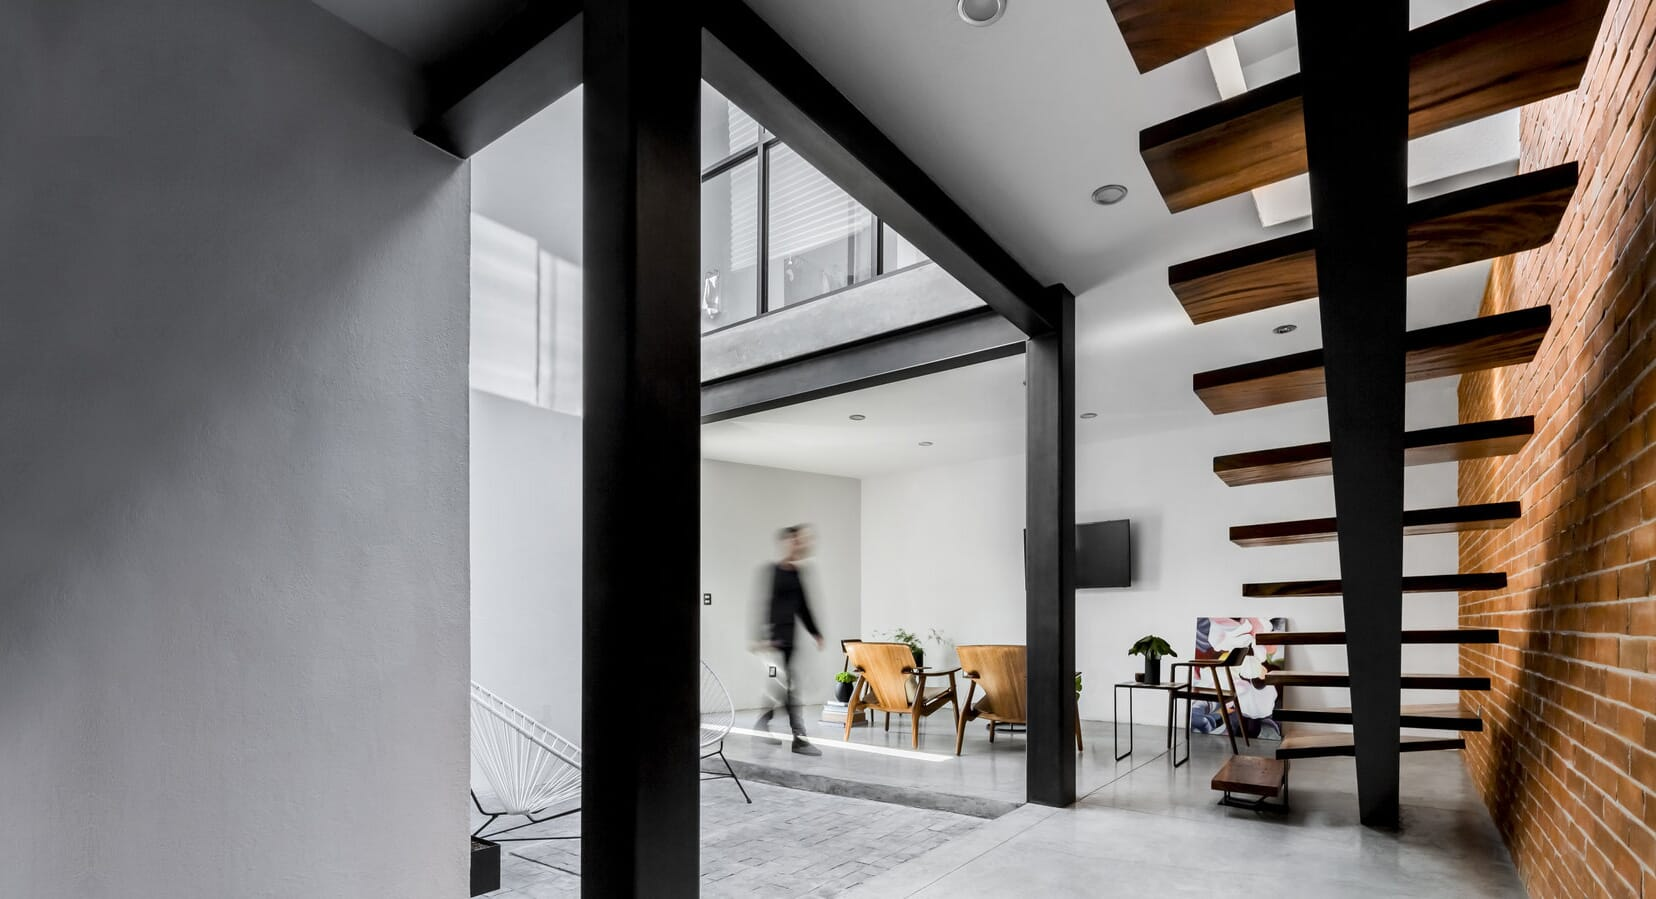 Take The Tour Of Casa Foraste by Taller 1+1 In Mexico